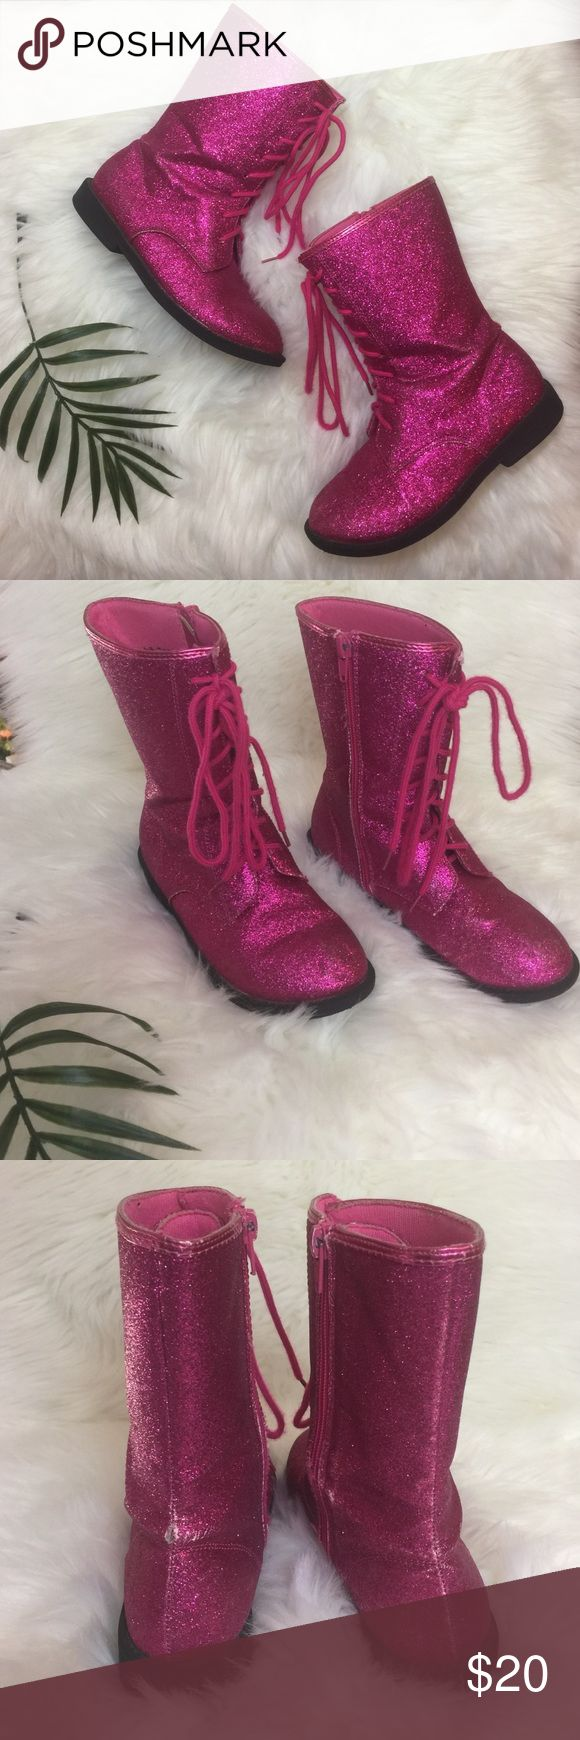 Glitter Combat Boots Hot pink sparkly lace up boots with a zipper side closure. Some wear shown in pirctures. Still good life in them. Jelly Beans Shoes Boots